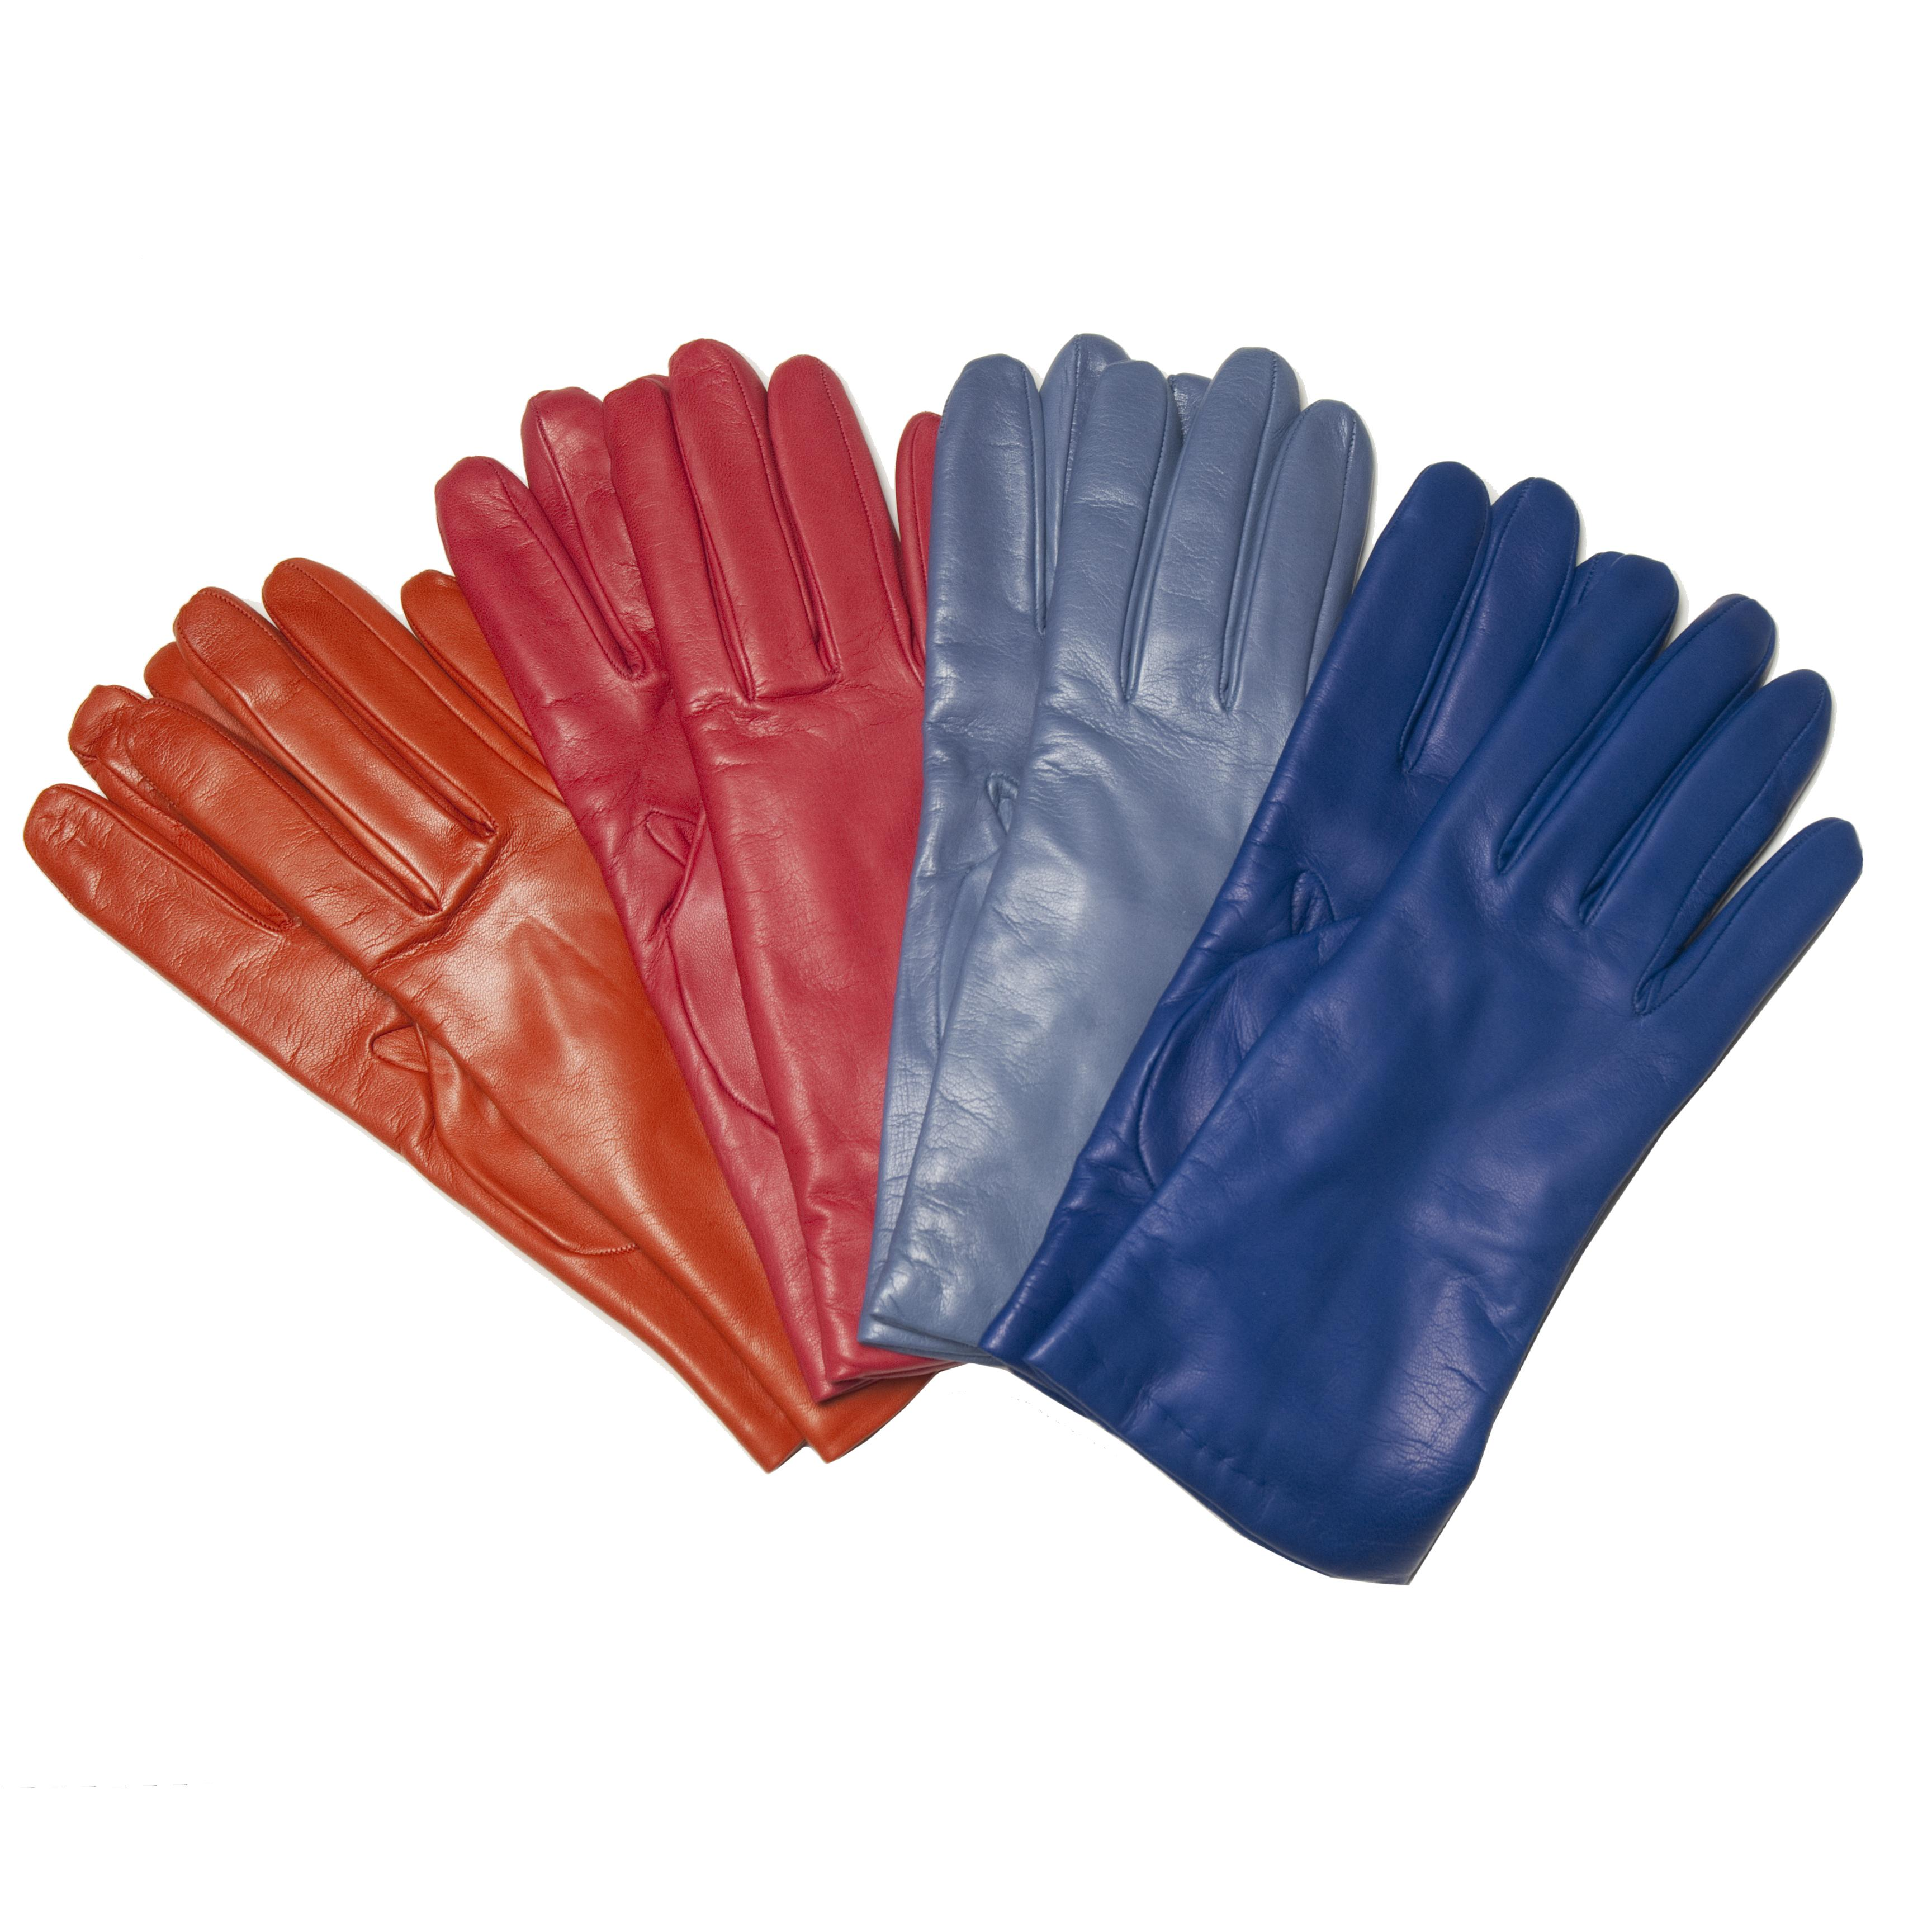 Womens Italian Made Cashmere Lined Leather Gloves